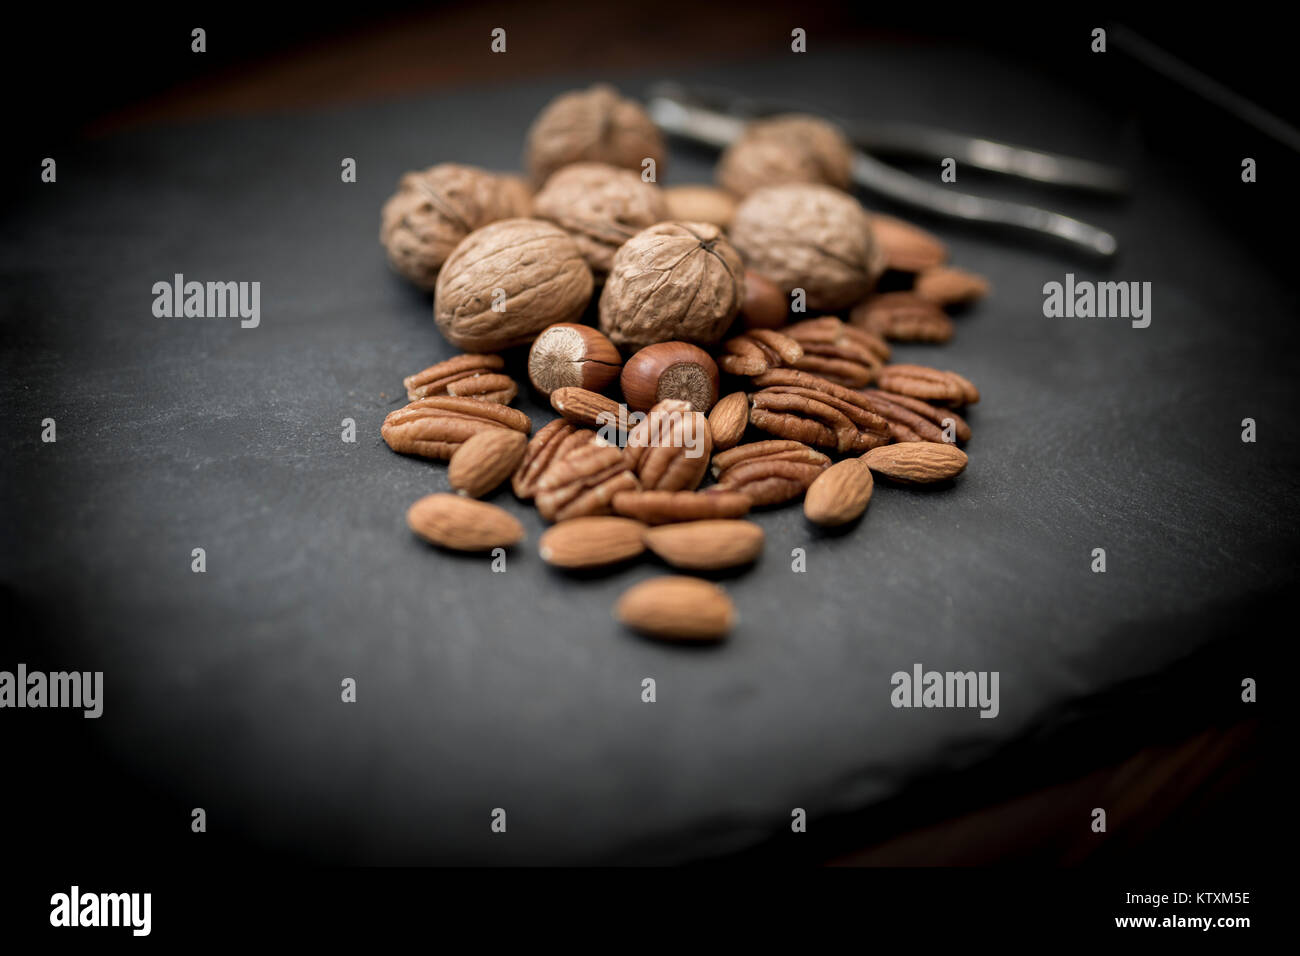 A healthy selection of mixed whole and shelled nuts including walnuts, hazelnuts, almonds and pecans with a nut - Stock Image